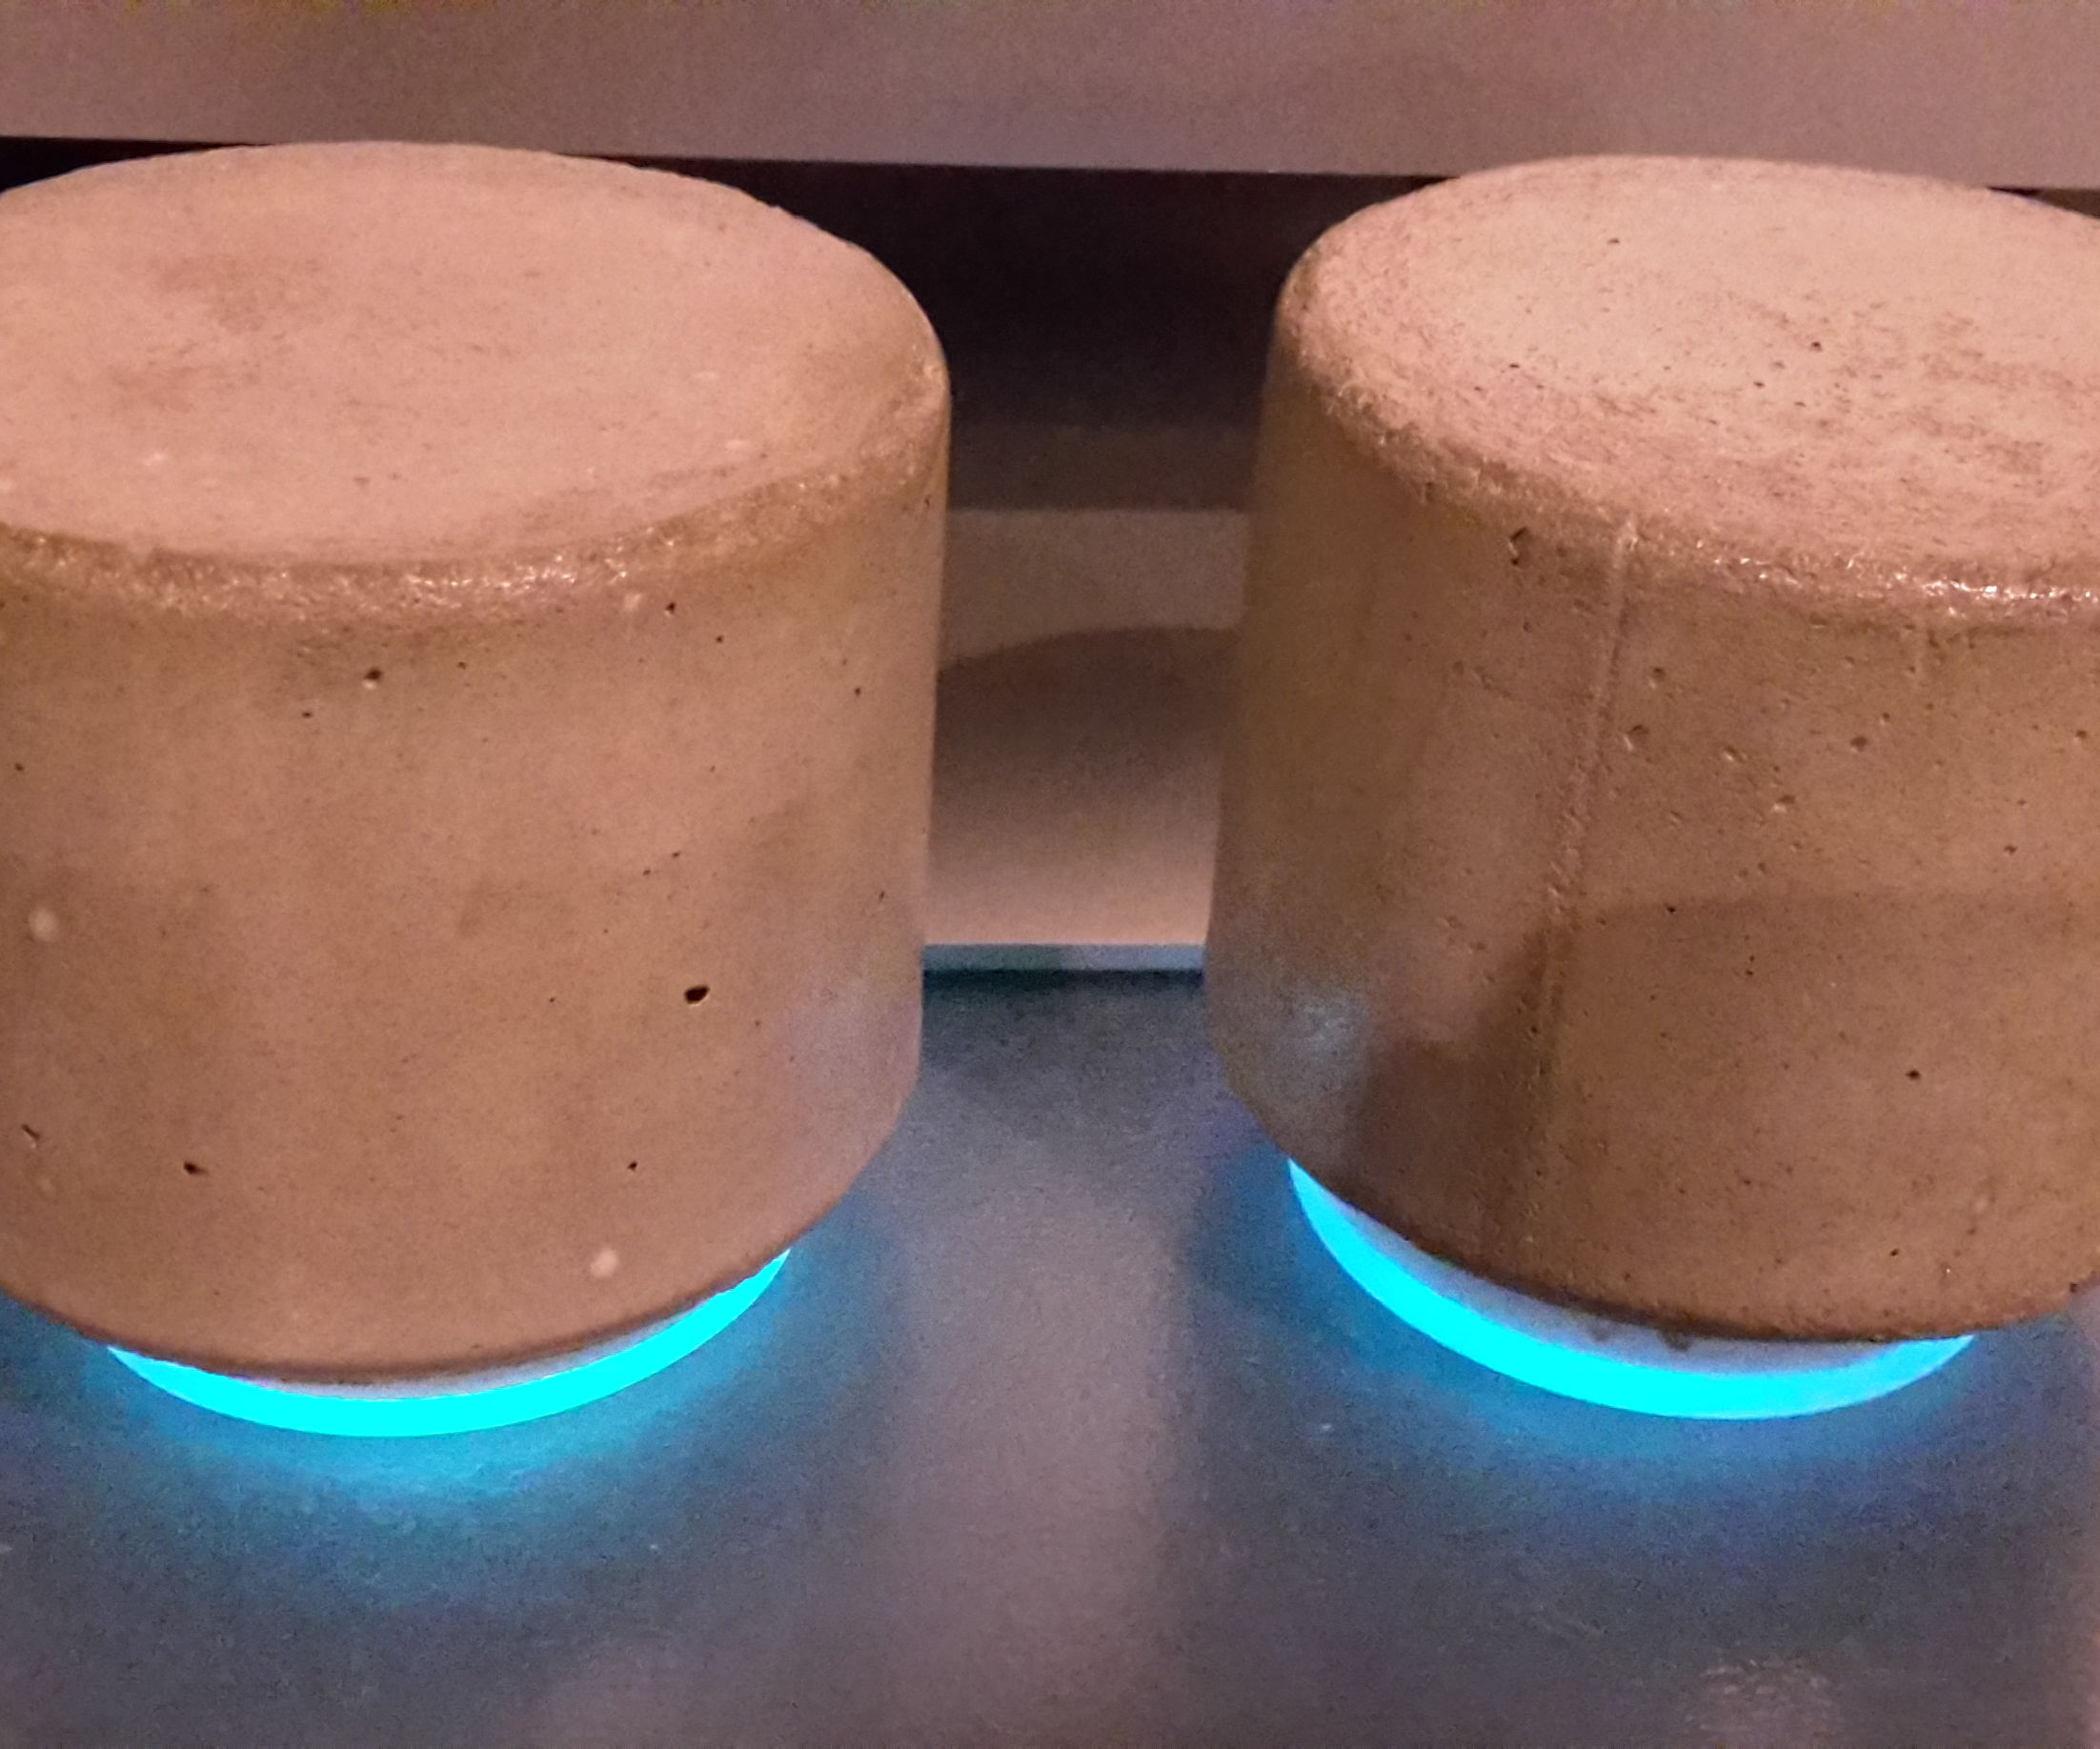 The multiglow concrete speakers